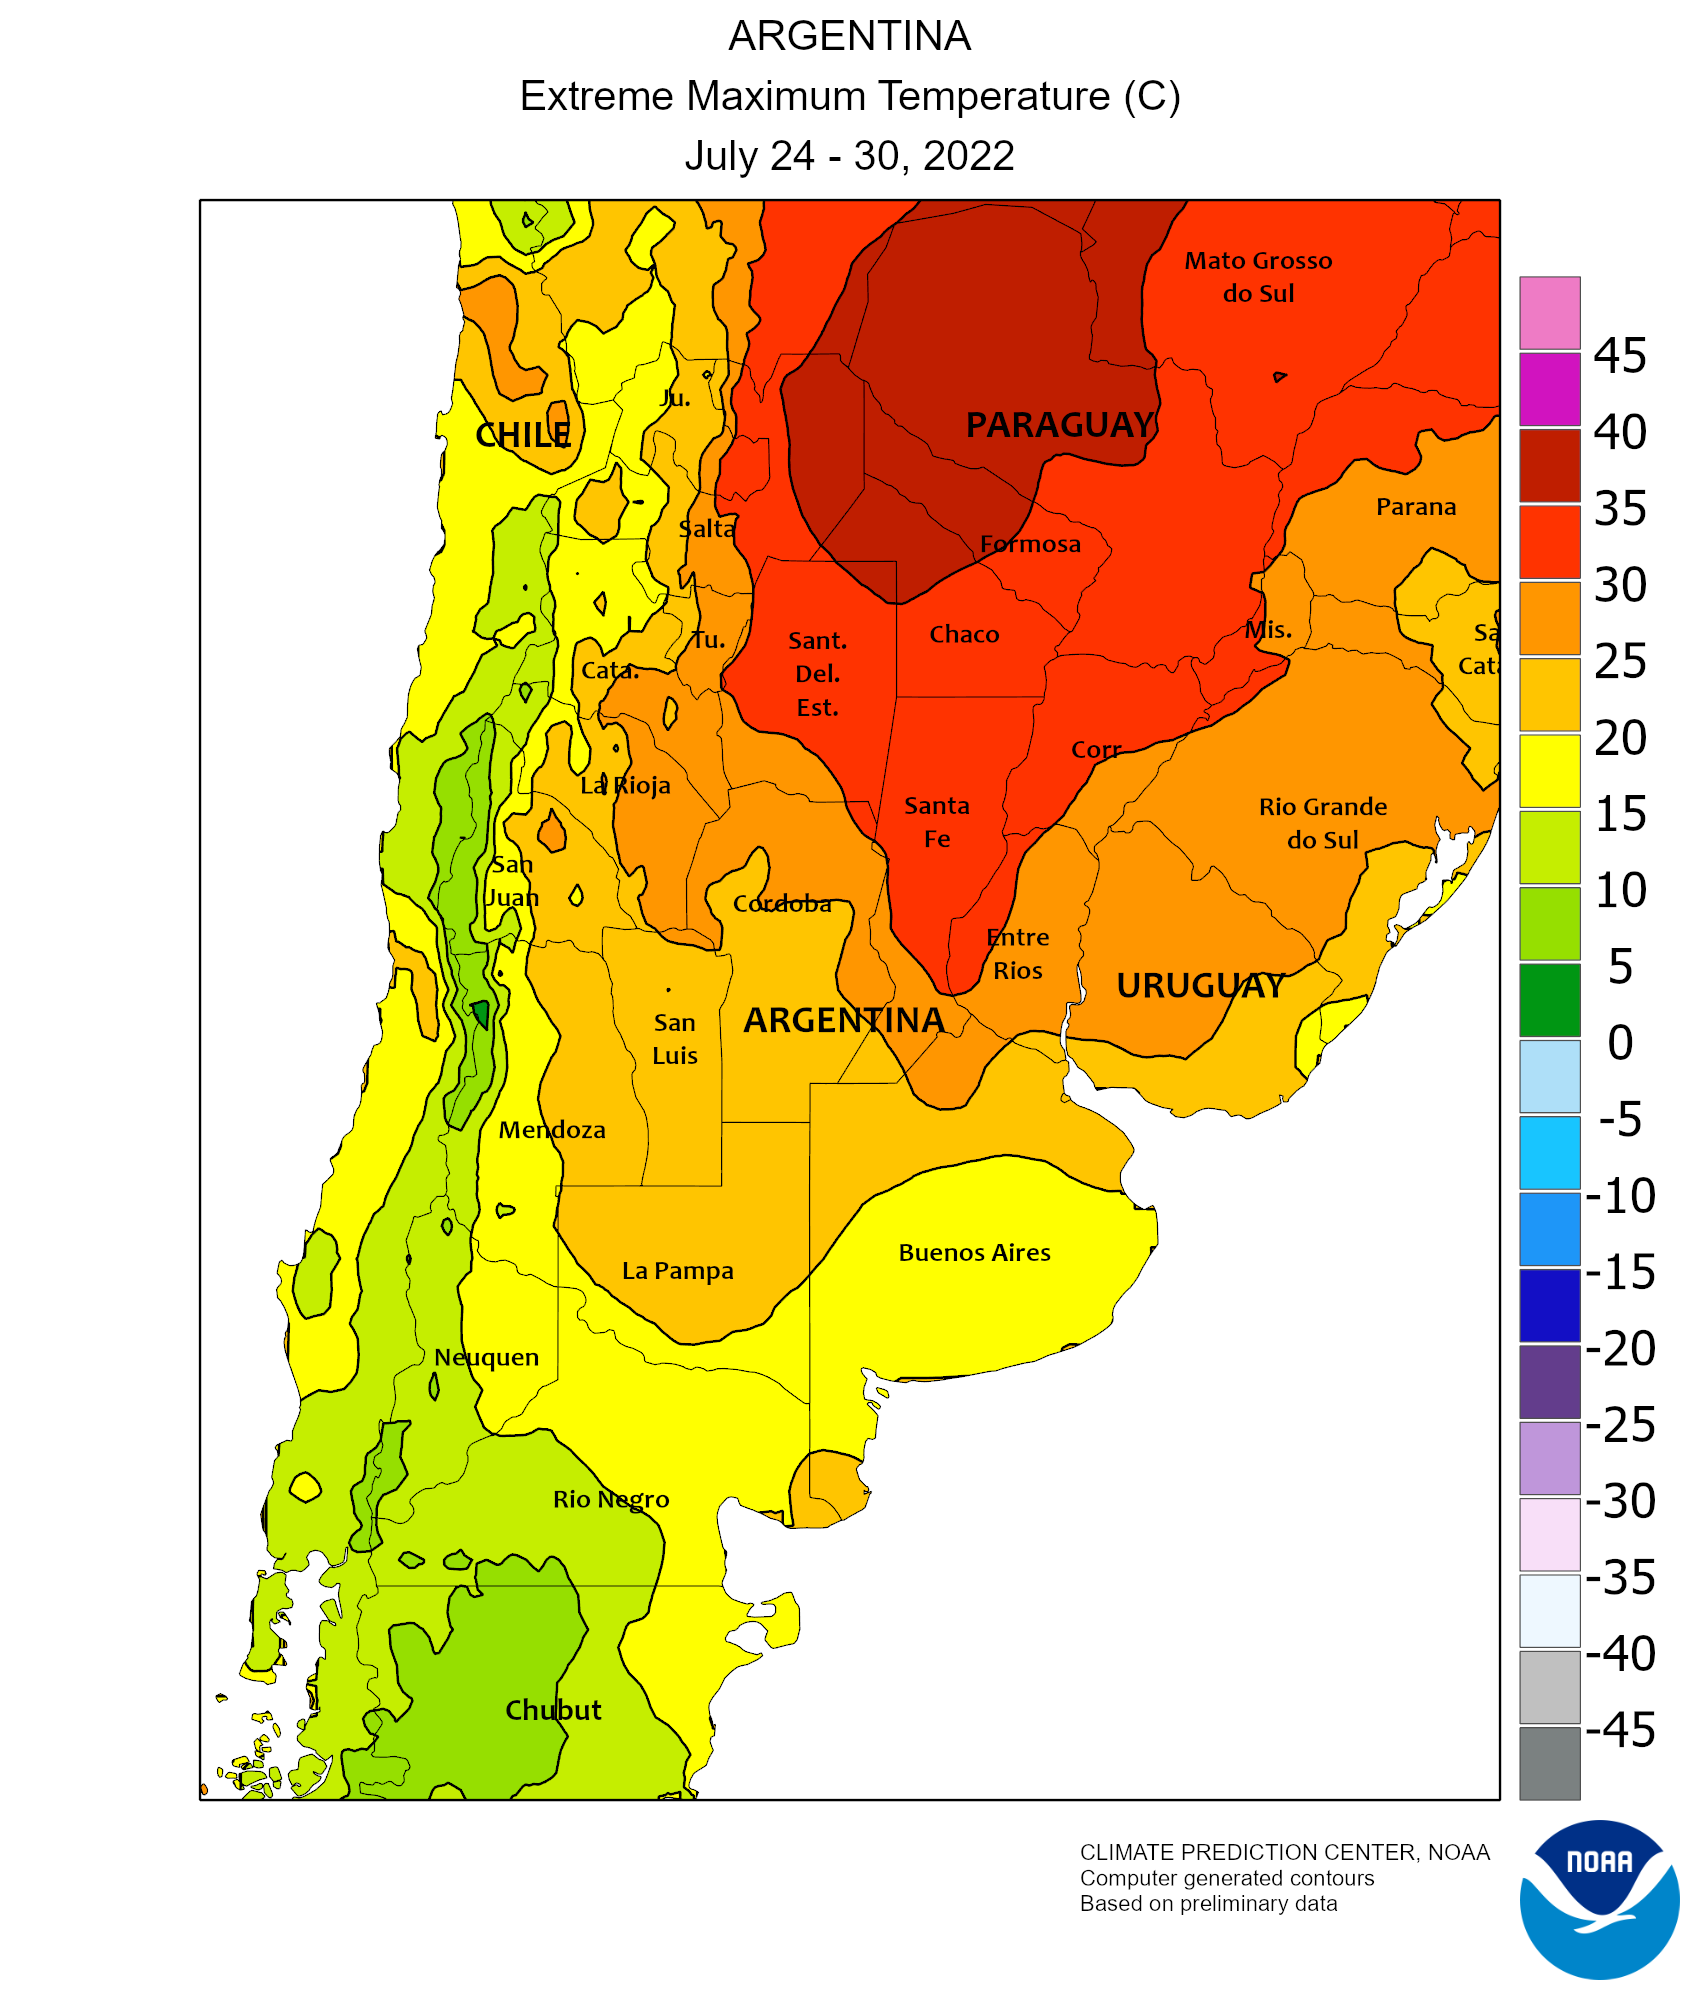 Weekly Maximum Temperature